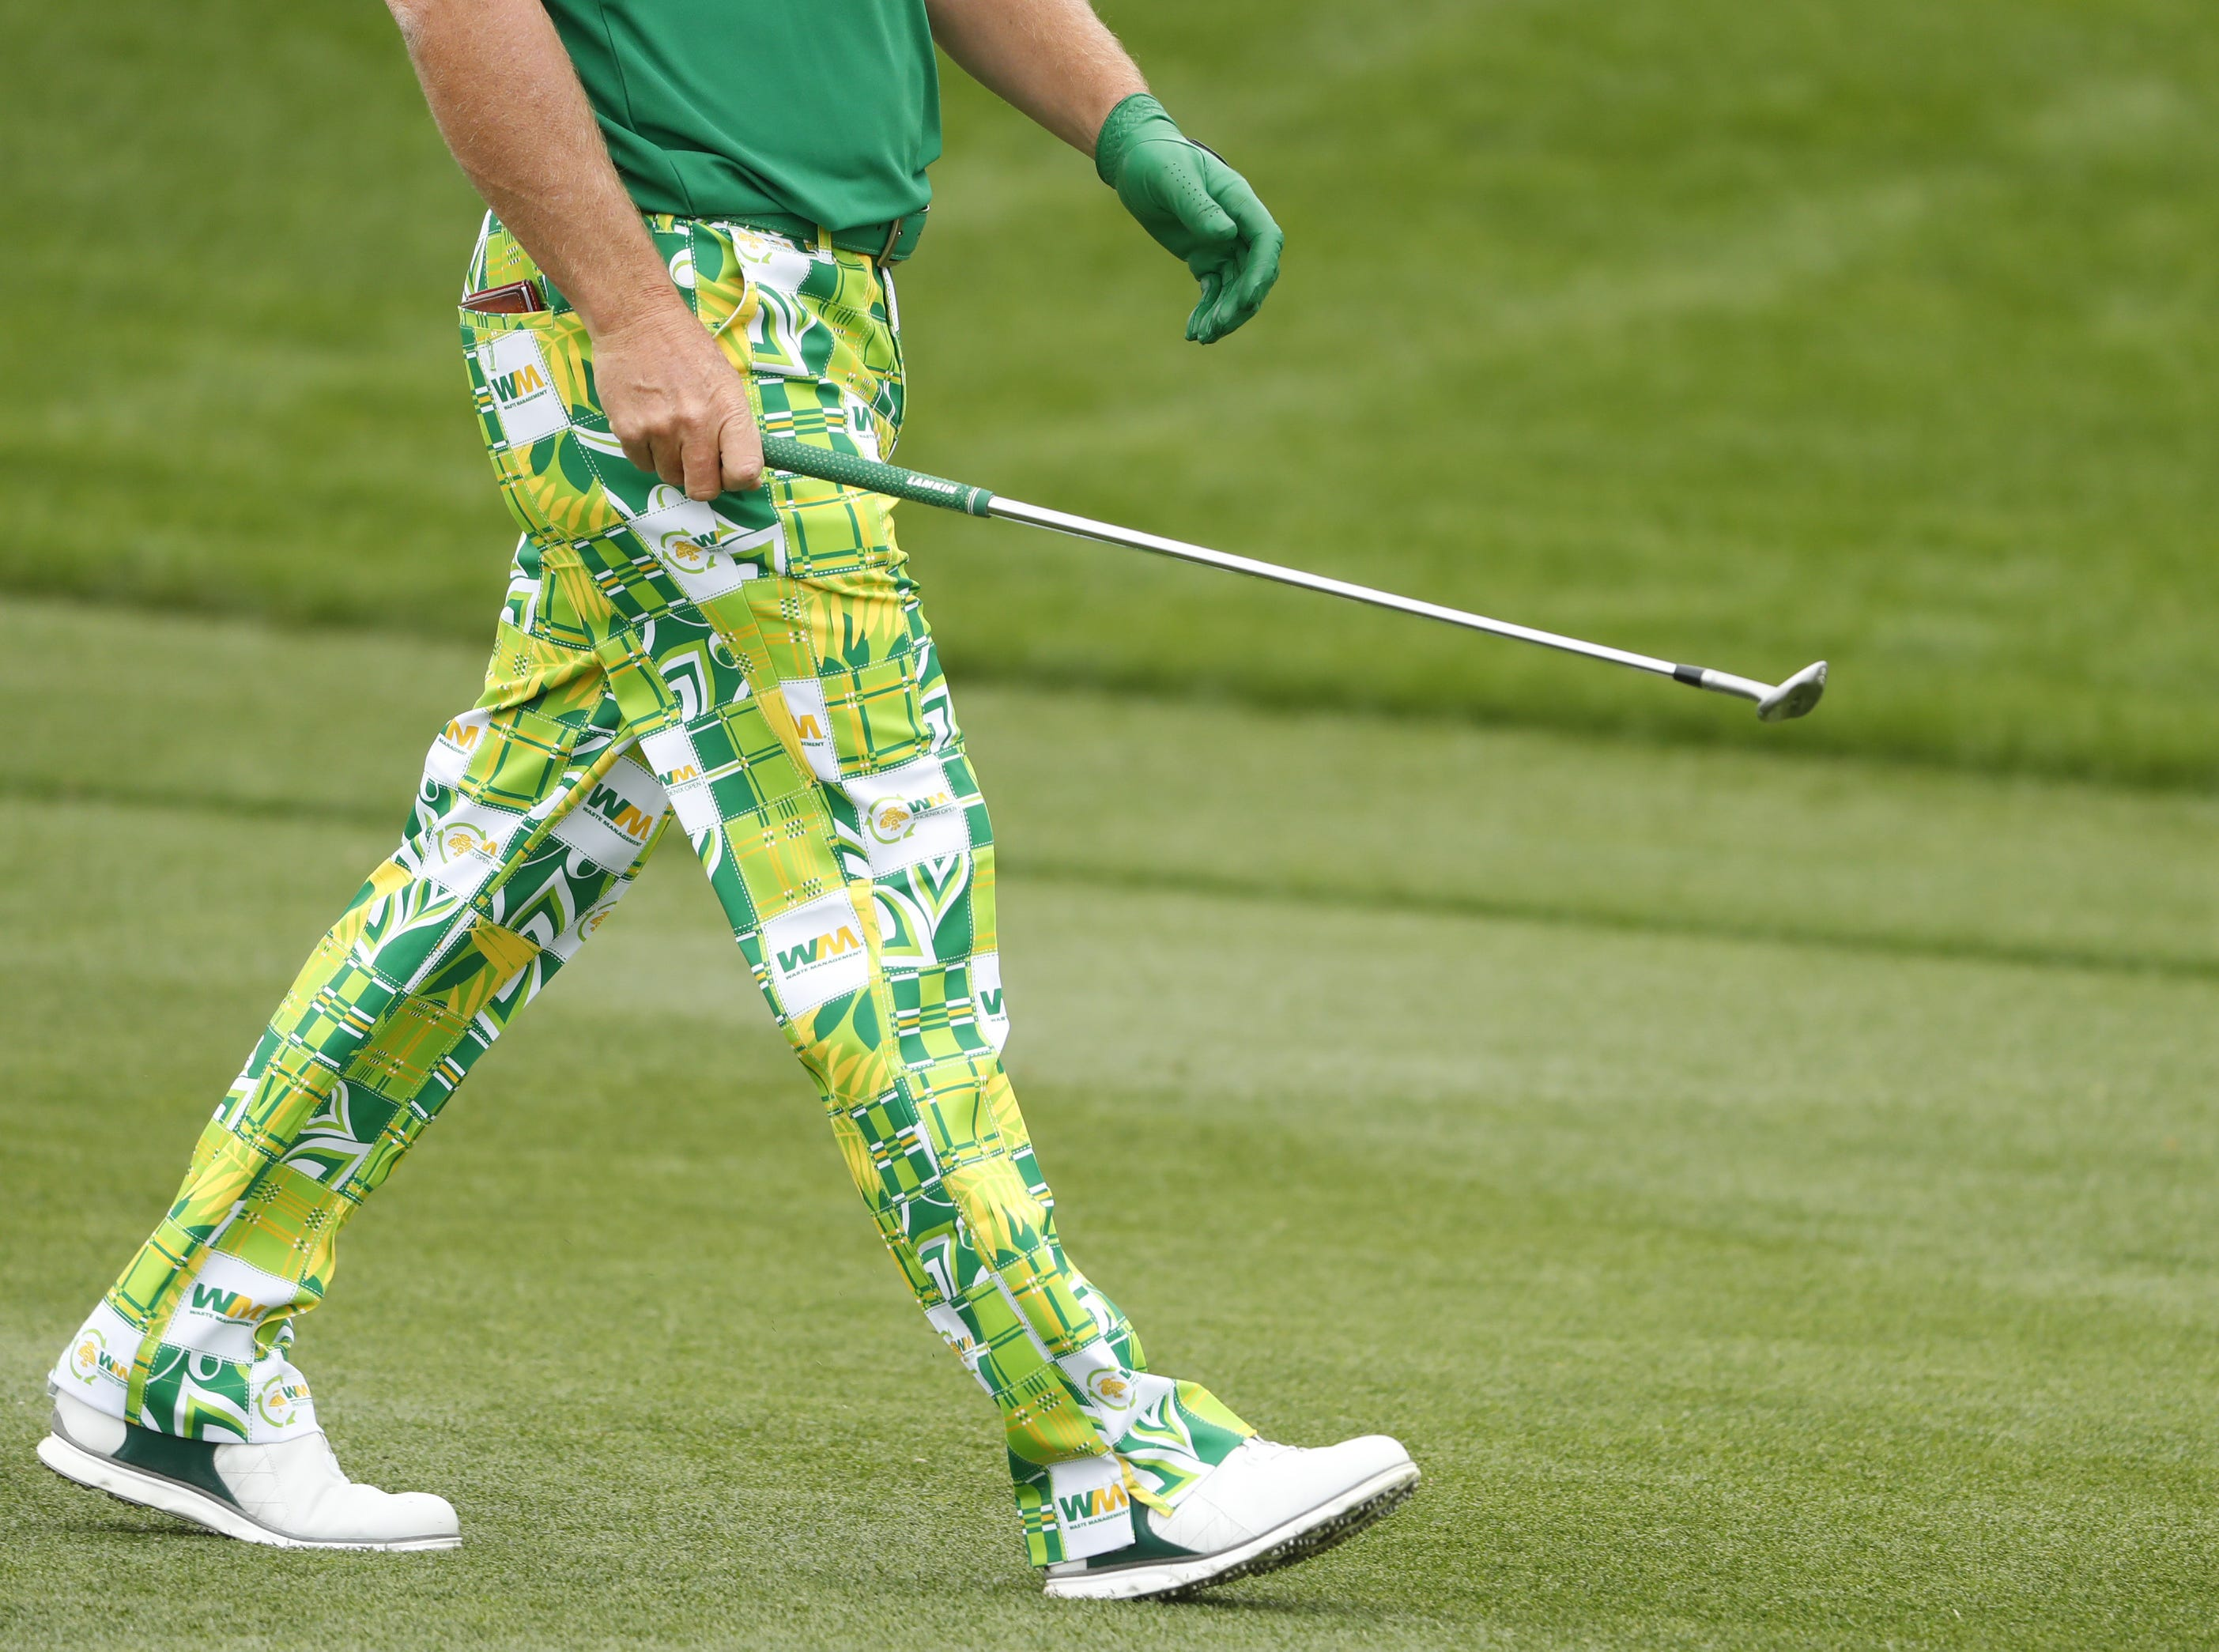 Charley Hoffman's green outfit as he walks to the 2nd green during the third round of the Waste Management Phoenix Open at TPC Scottsdale in Scottsdale, Ariz. on February 2, 2019.